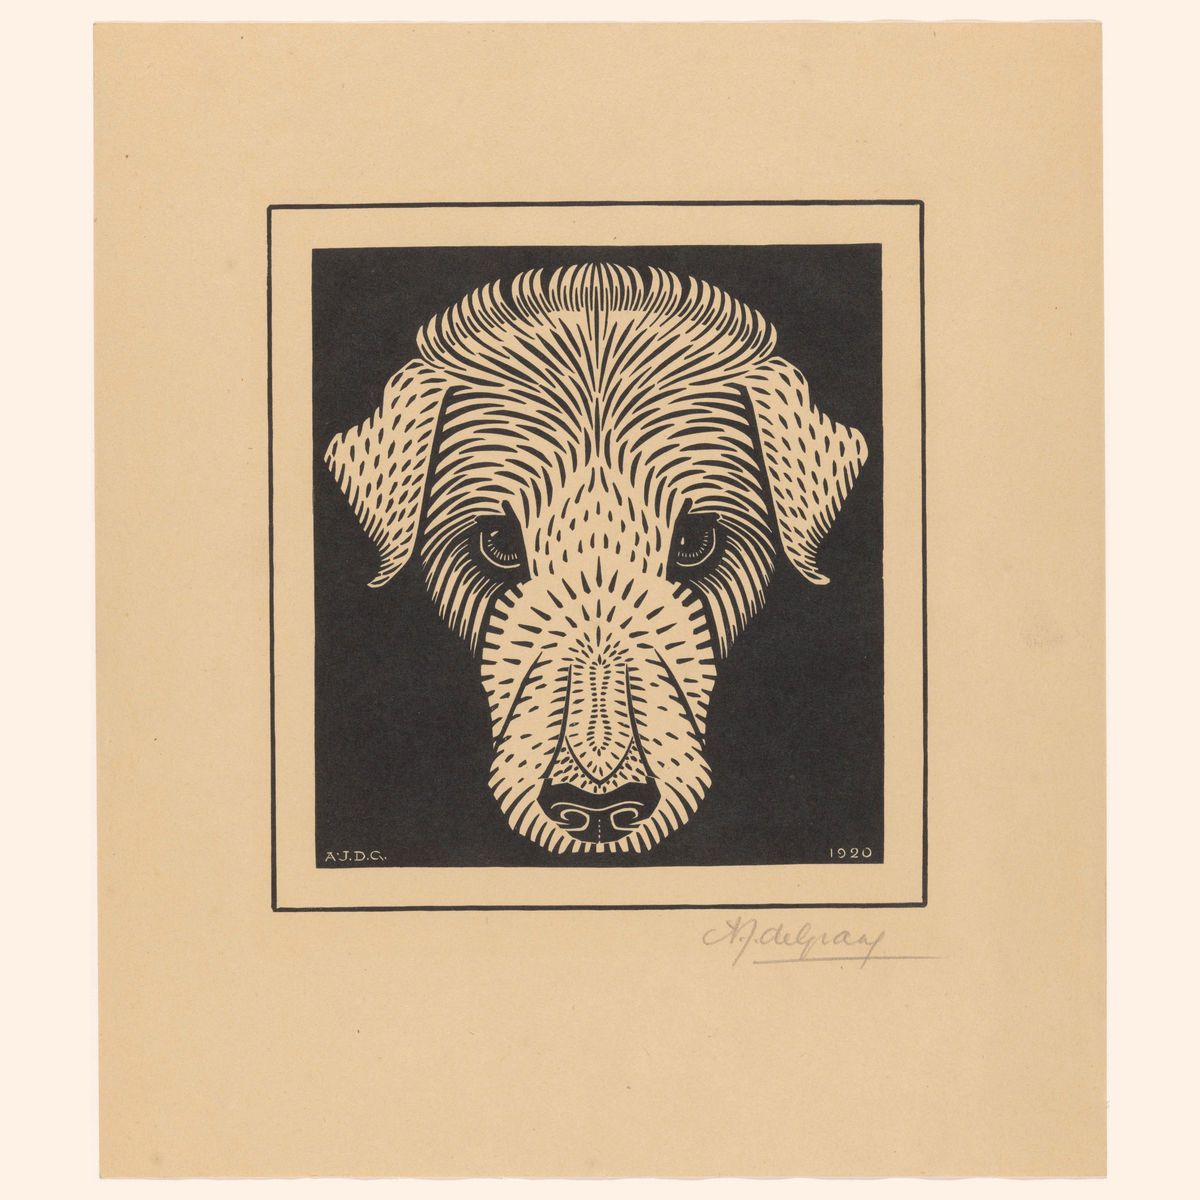 Dog's Head by Julie de Graag - 1920